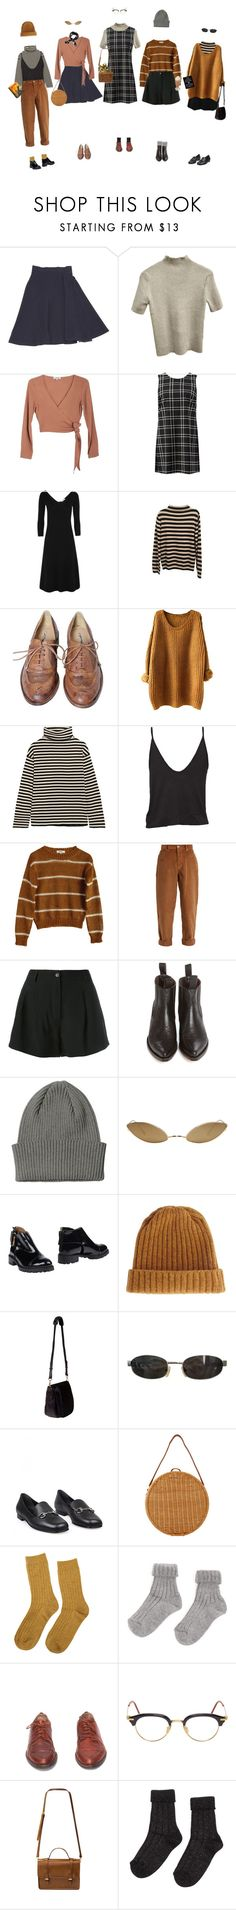 """Conflicted About The Seasons"" by silentmoonchild ❤ liked on Polyvore featuring Hermès, Samuji, Nina Ricci, Yves Saint Laurent, Studio TMLS, Steve J & Yoni P, T By Alexander Wang, Miu Miu, Moschino and Opening Ceremony"